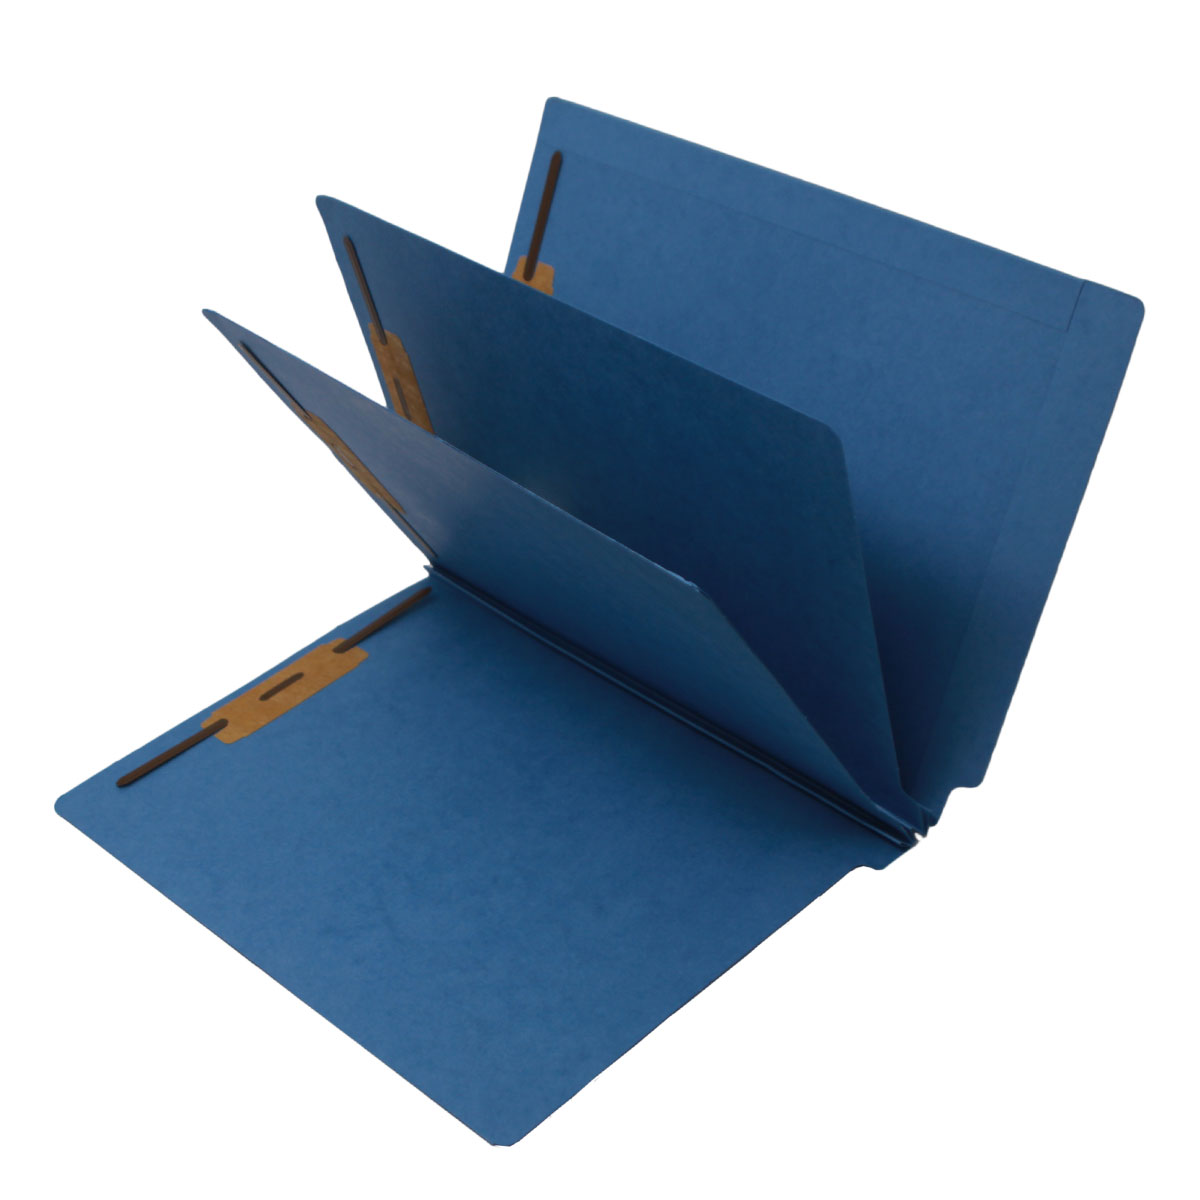 S-9240-BLU - 14 Pt. Blue Classification Folders, Full Cut End Tab, Letter Size, 2 Dividers (Box of 15)